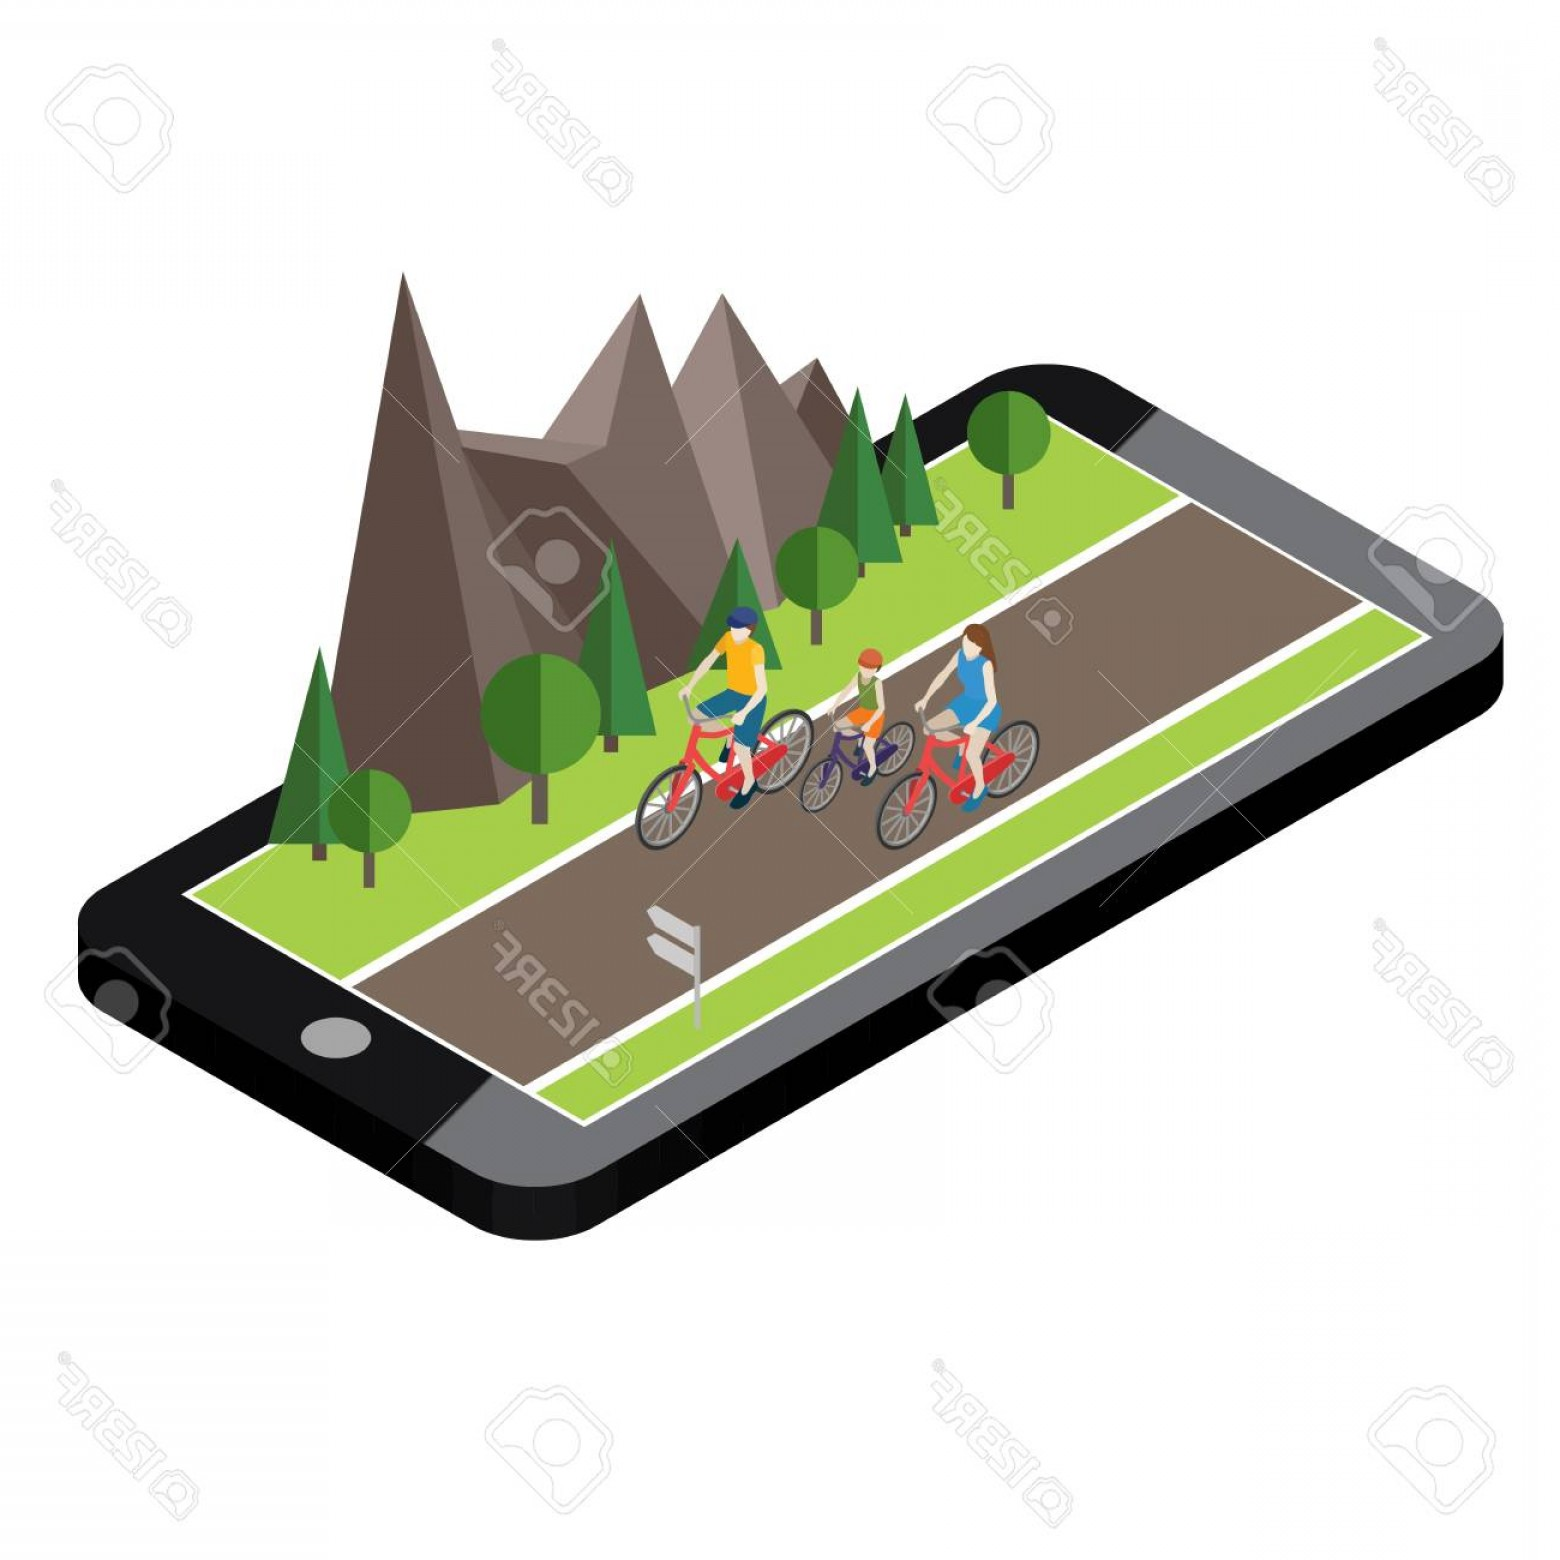 Geo-Tracking Vector: Photostock Vector Isometric Countryside Summer Road Mobile Geo Tracking Map Family Cycling On Countryside Summer Sunny